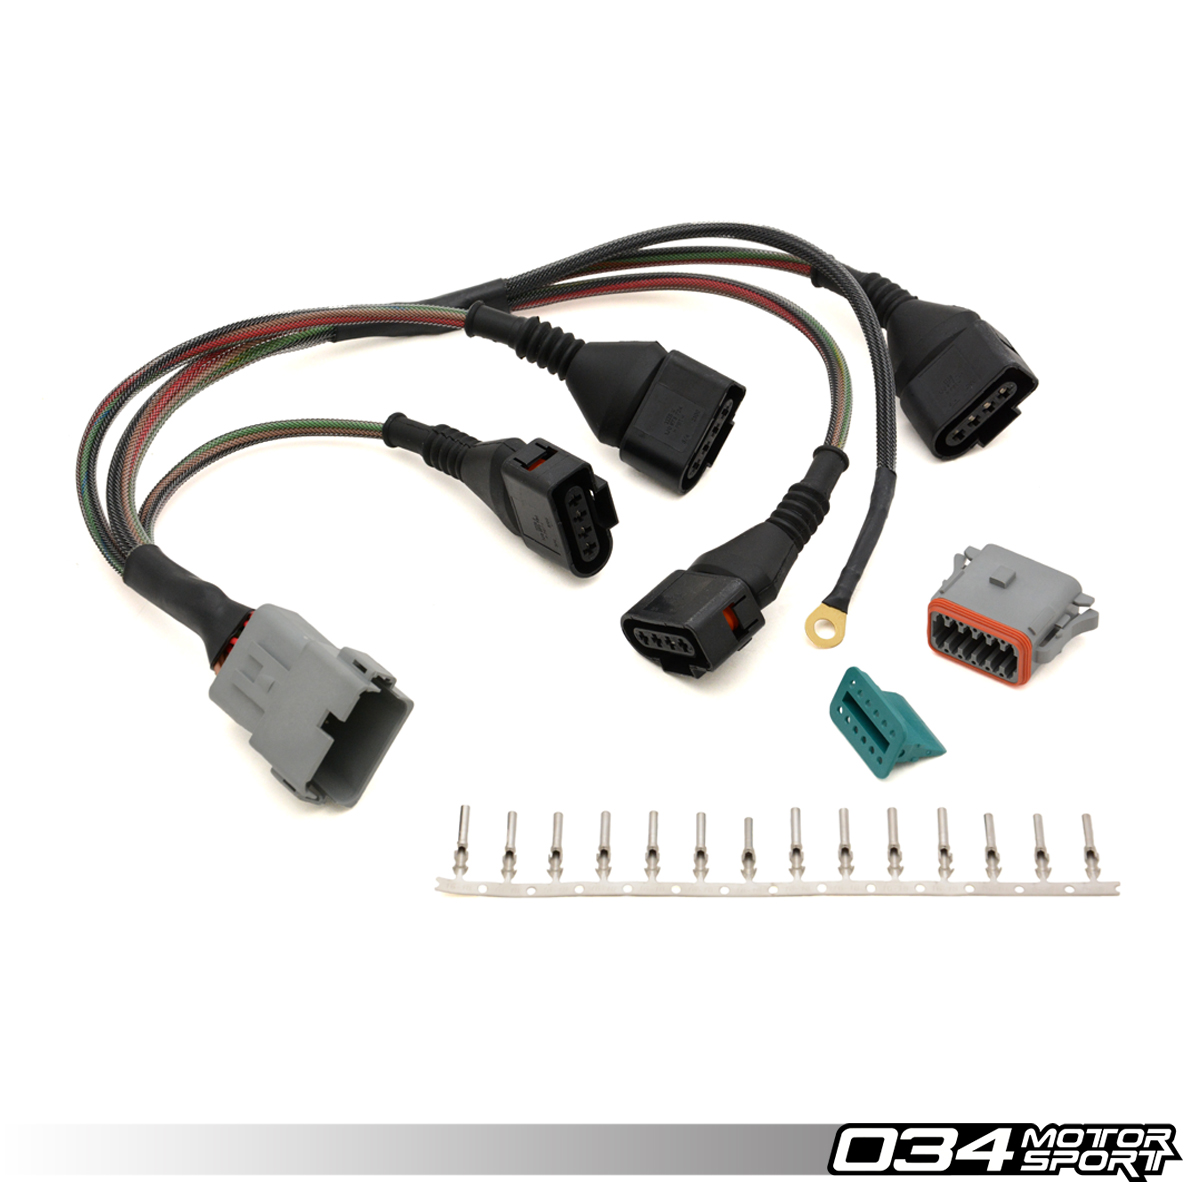 Repair/Update Harness, Audi/Volkswagen 1.8T with 4-Wire Coils -  034-701-0004 - 034Motorsport